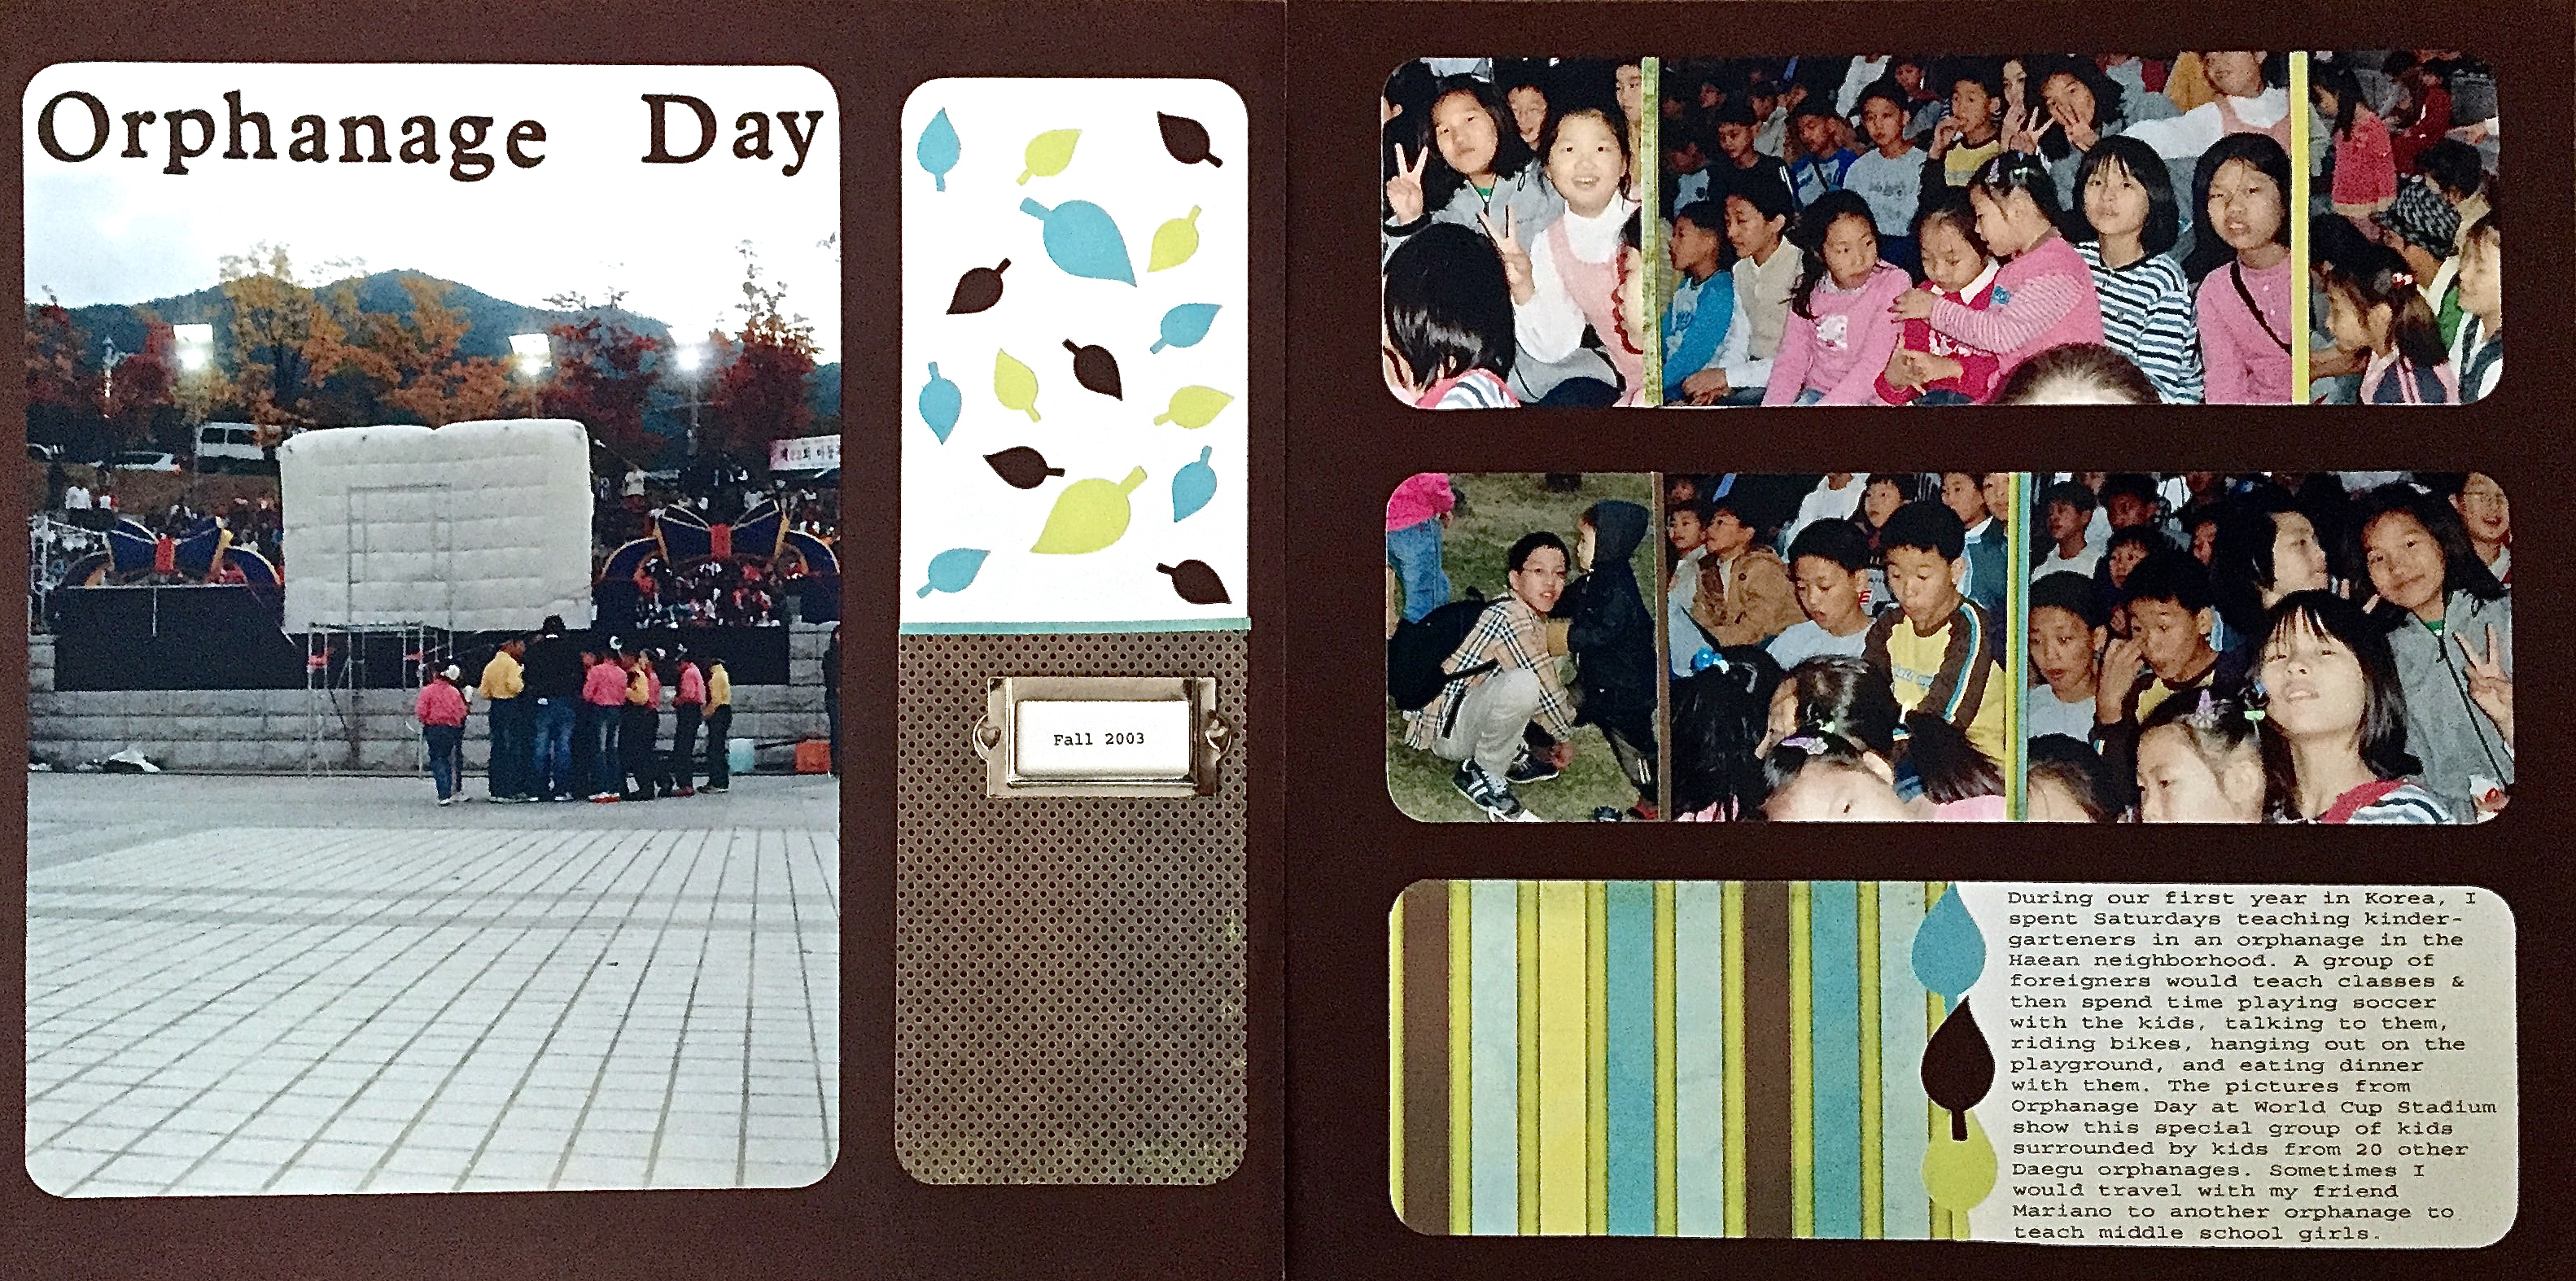 Daegu Orphanage Day